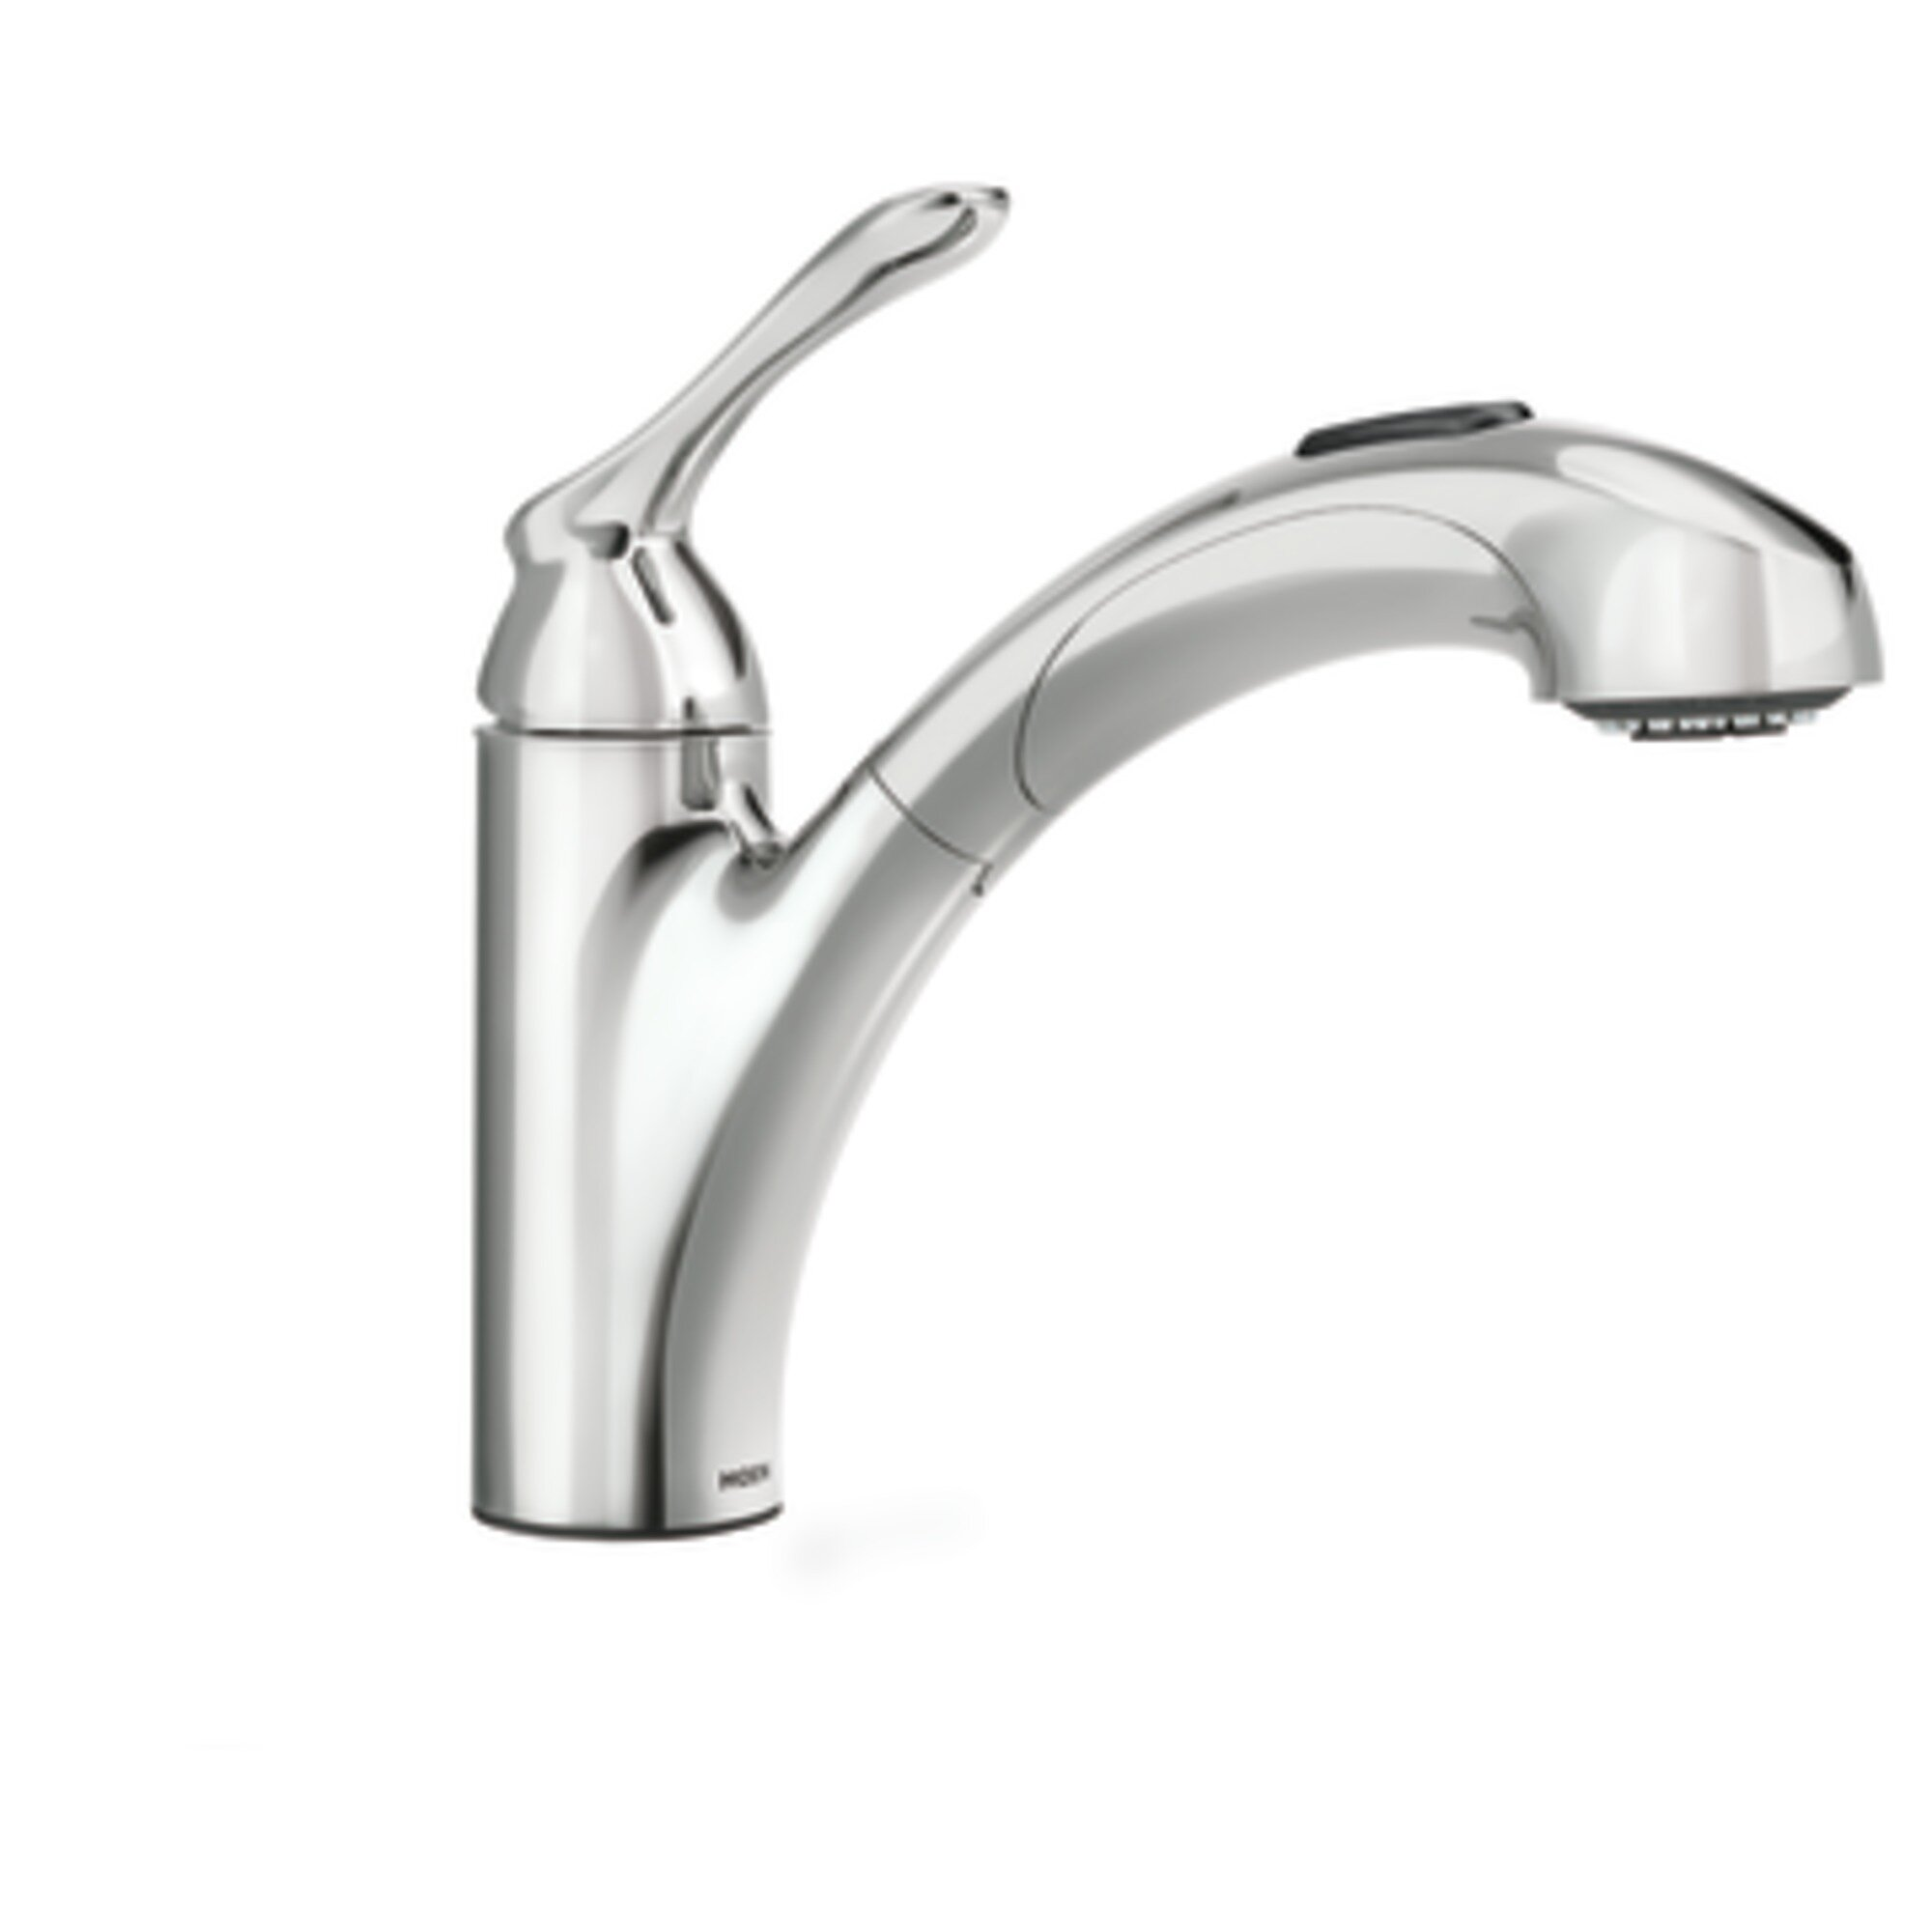 marvelous Kitchen Faucet Hard To Swivel #5: Moen Banbury Single Handle Deck Mounted Kitchen Faucet Reviews